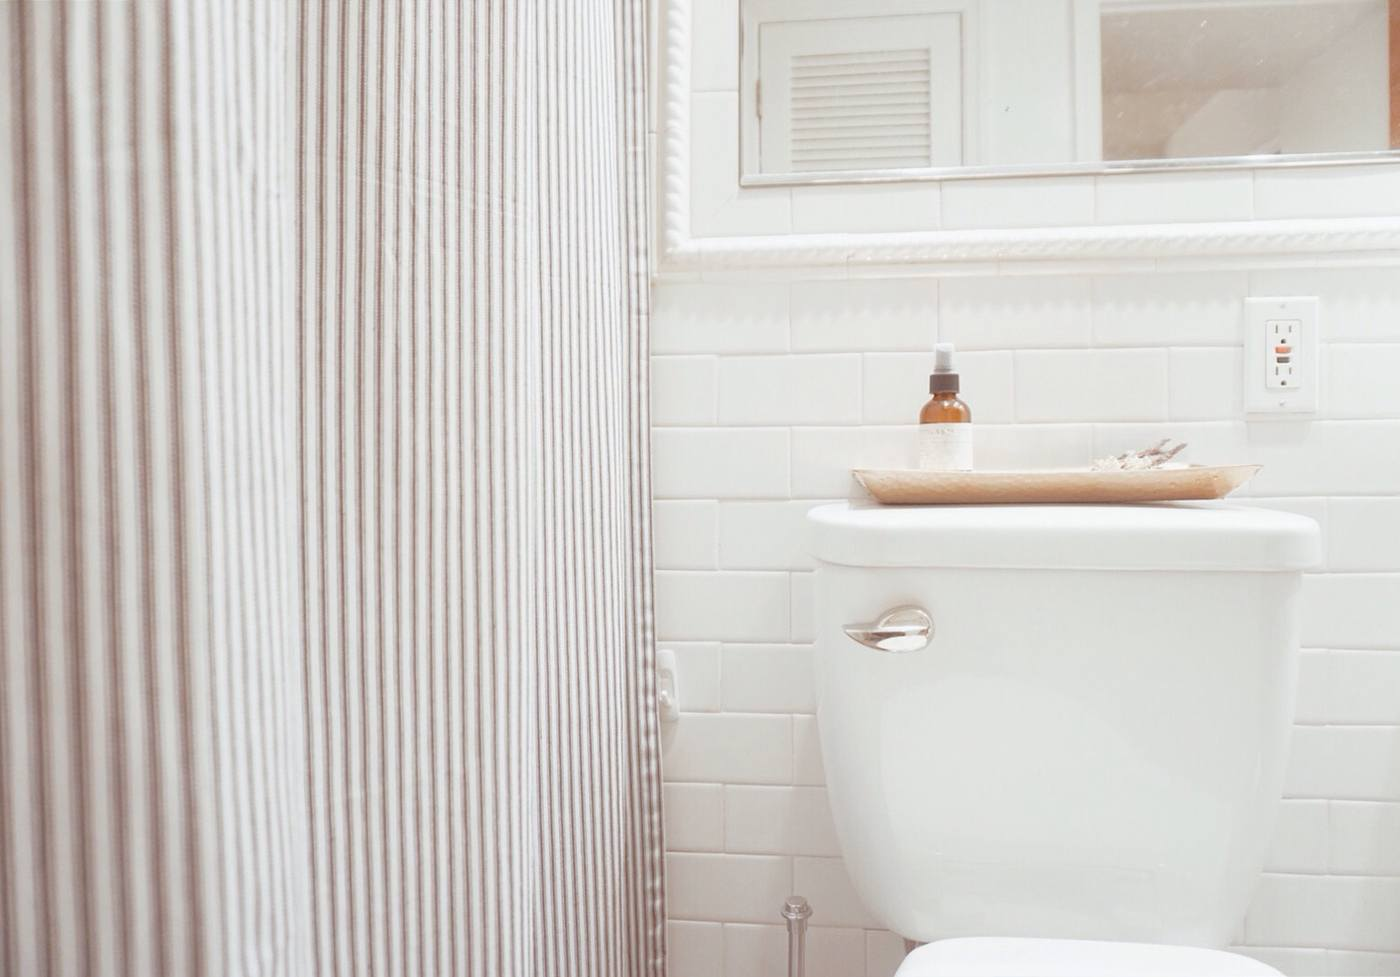 How To Keep A Clean Shower Curtain And Prevent Mold Well Good